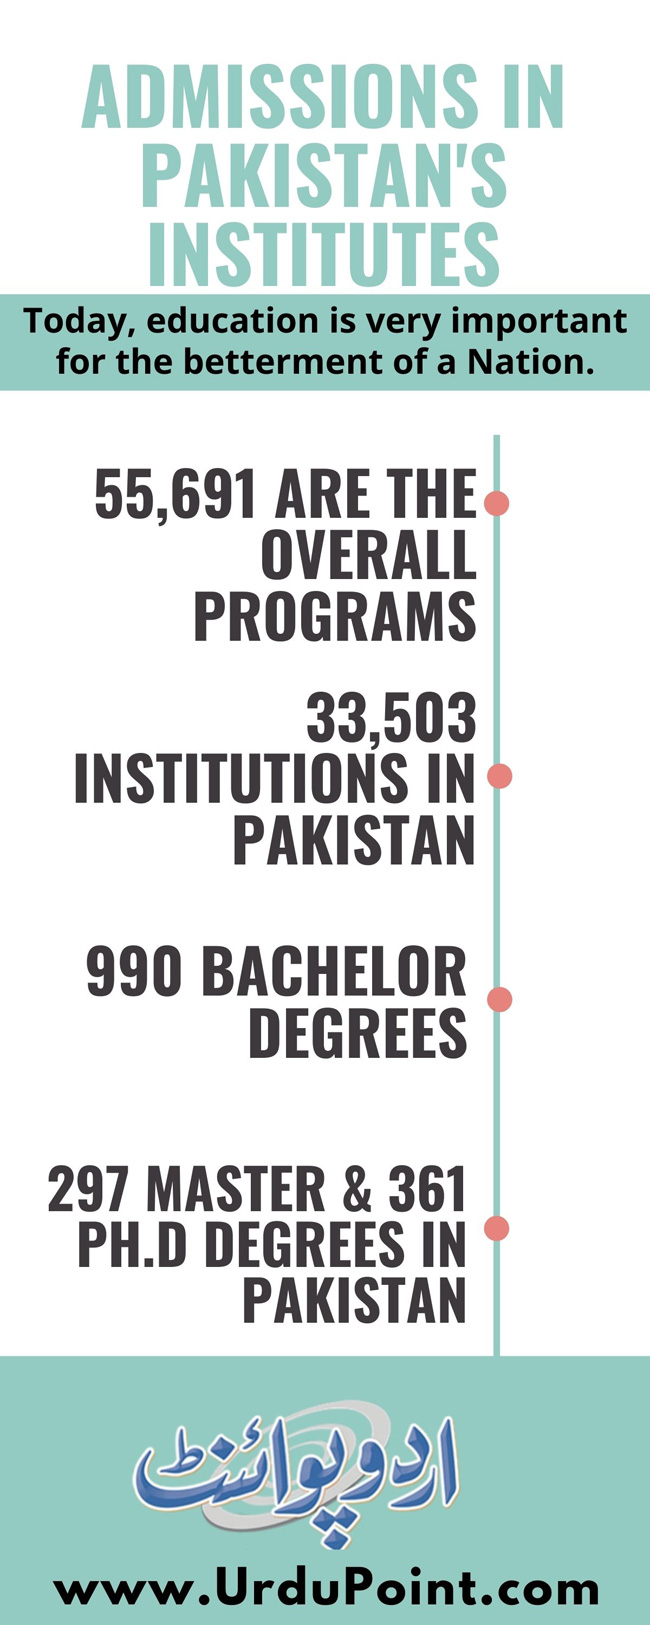 Admissions in Pakistan 2020